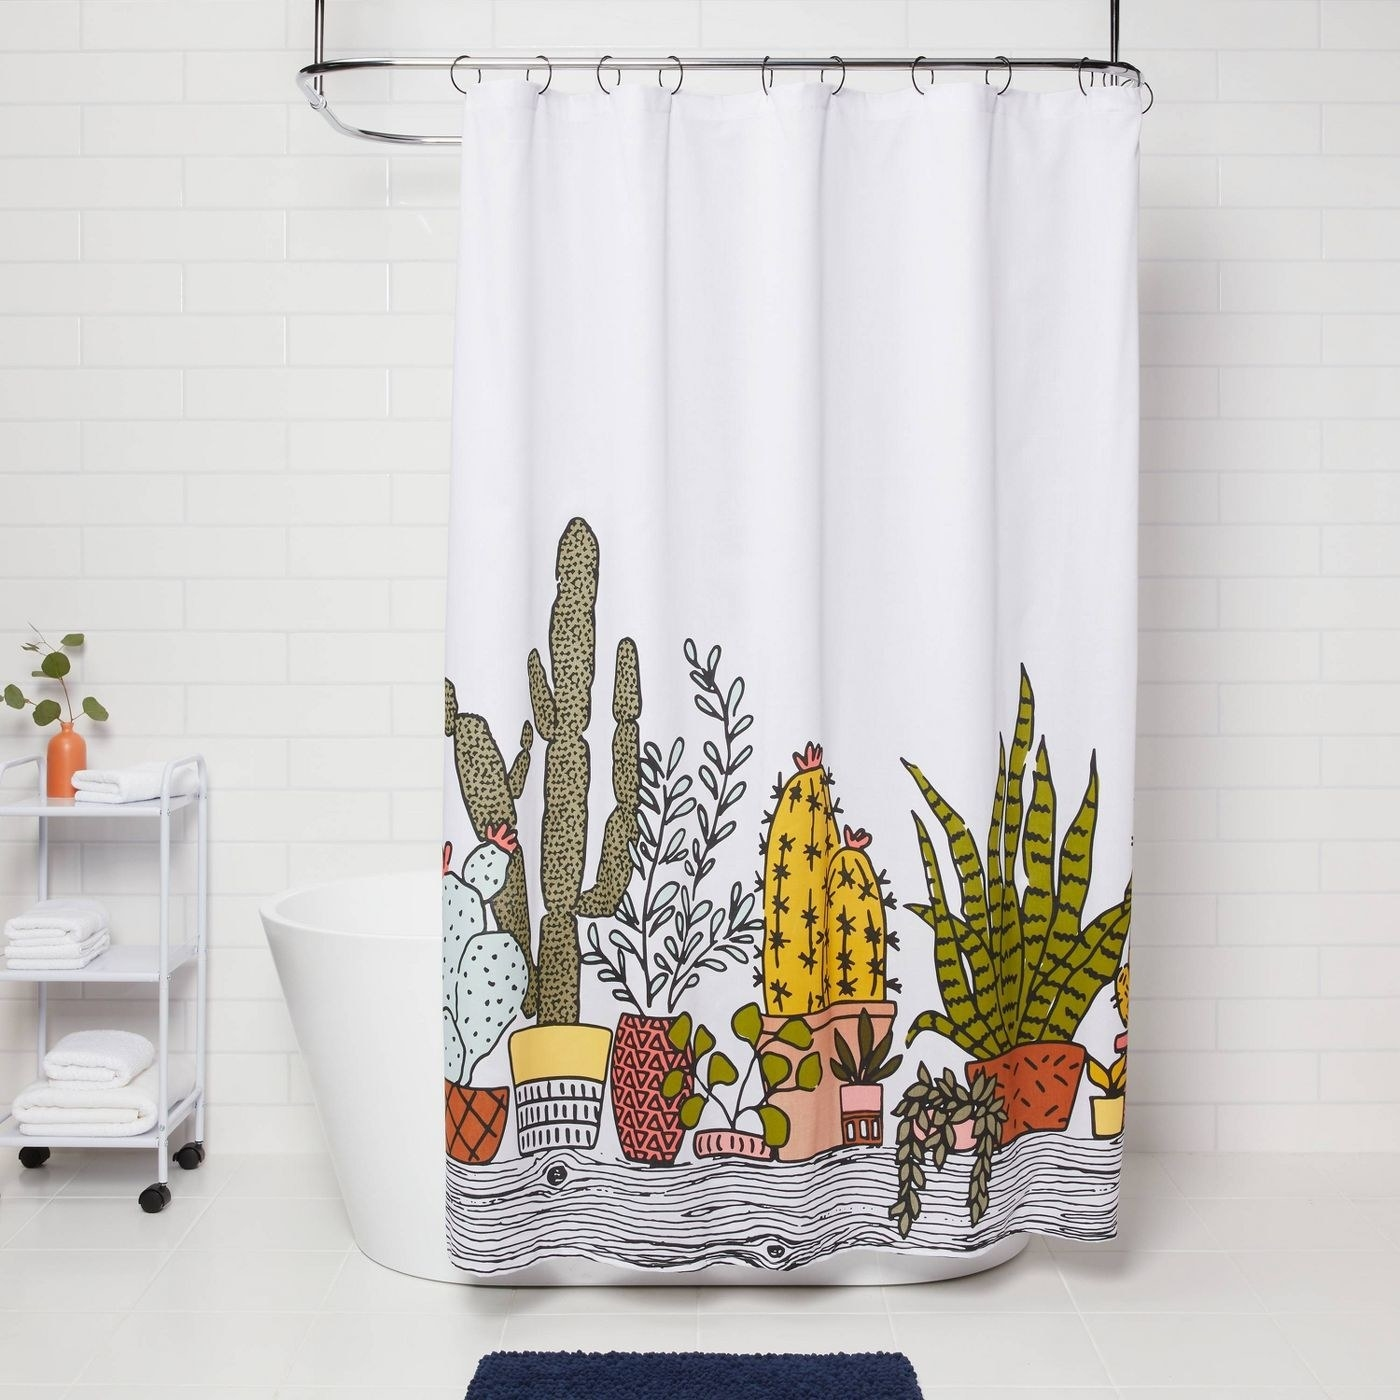 white shower curtain with plant design hanging over a tub